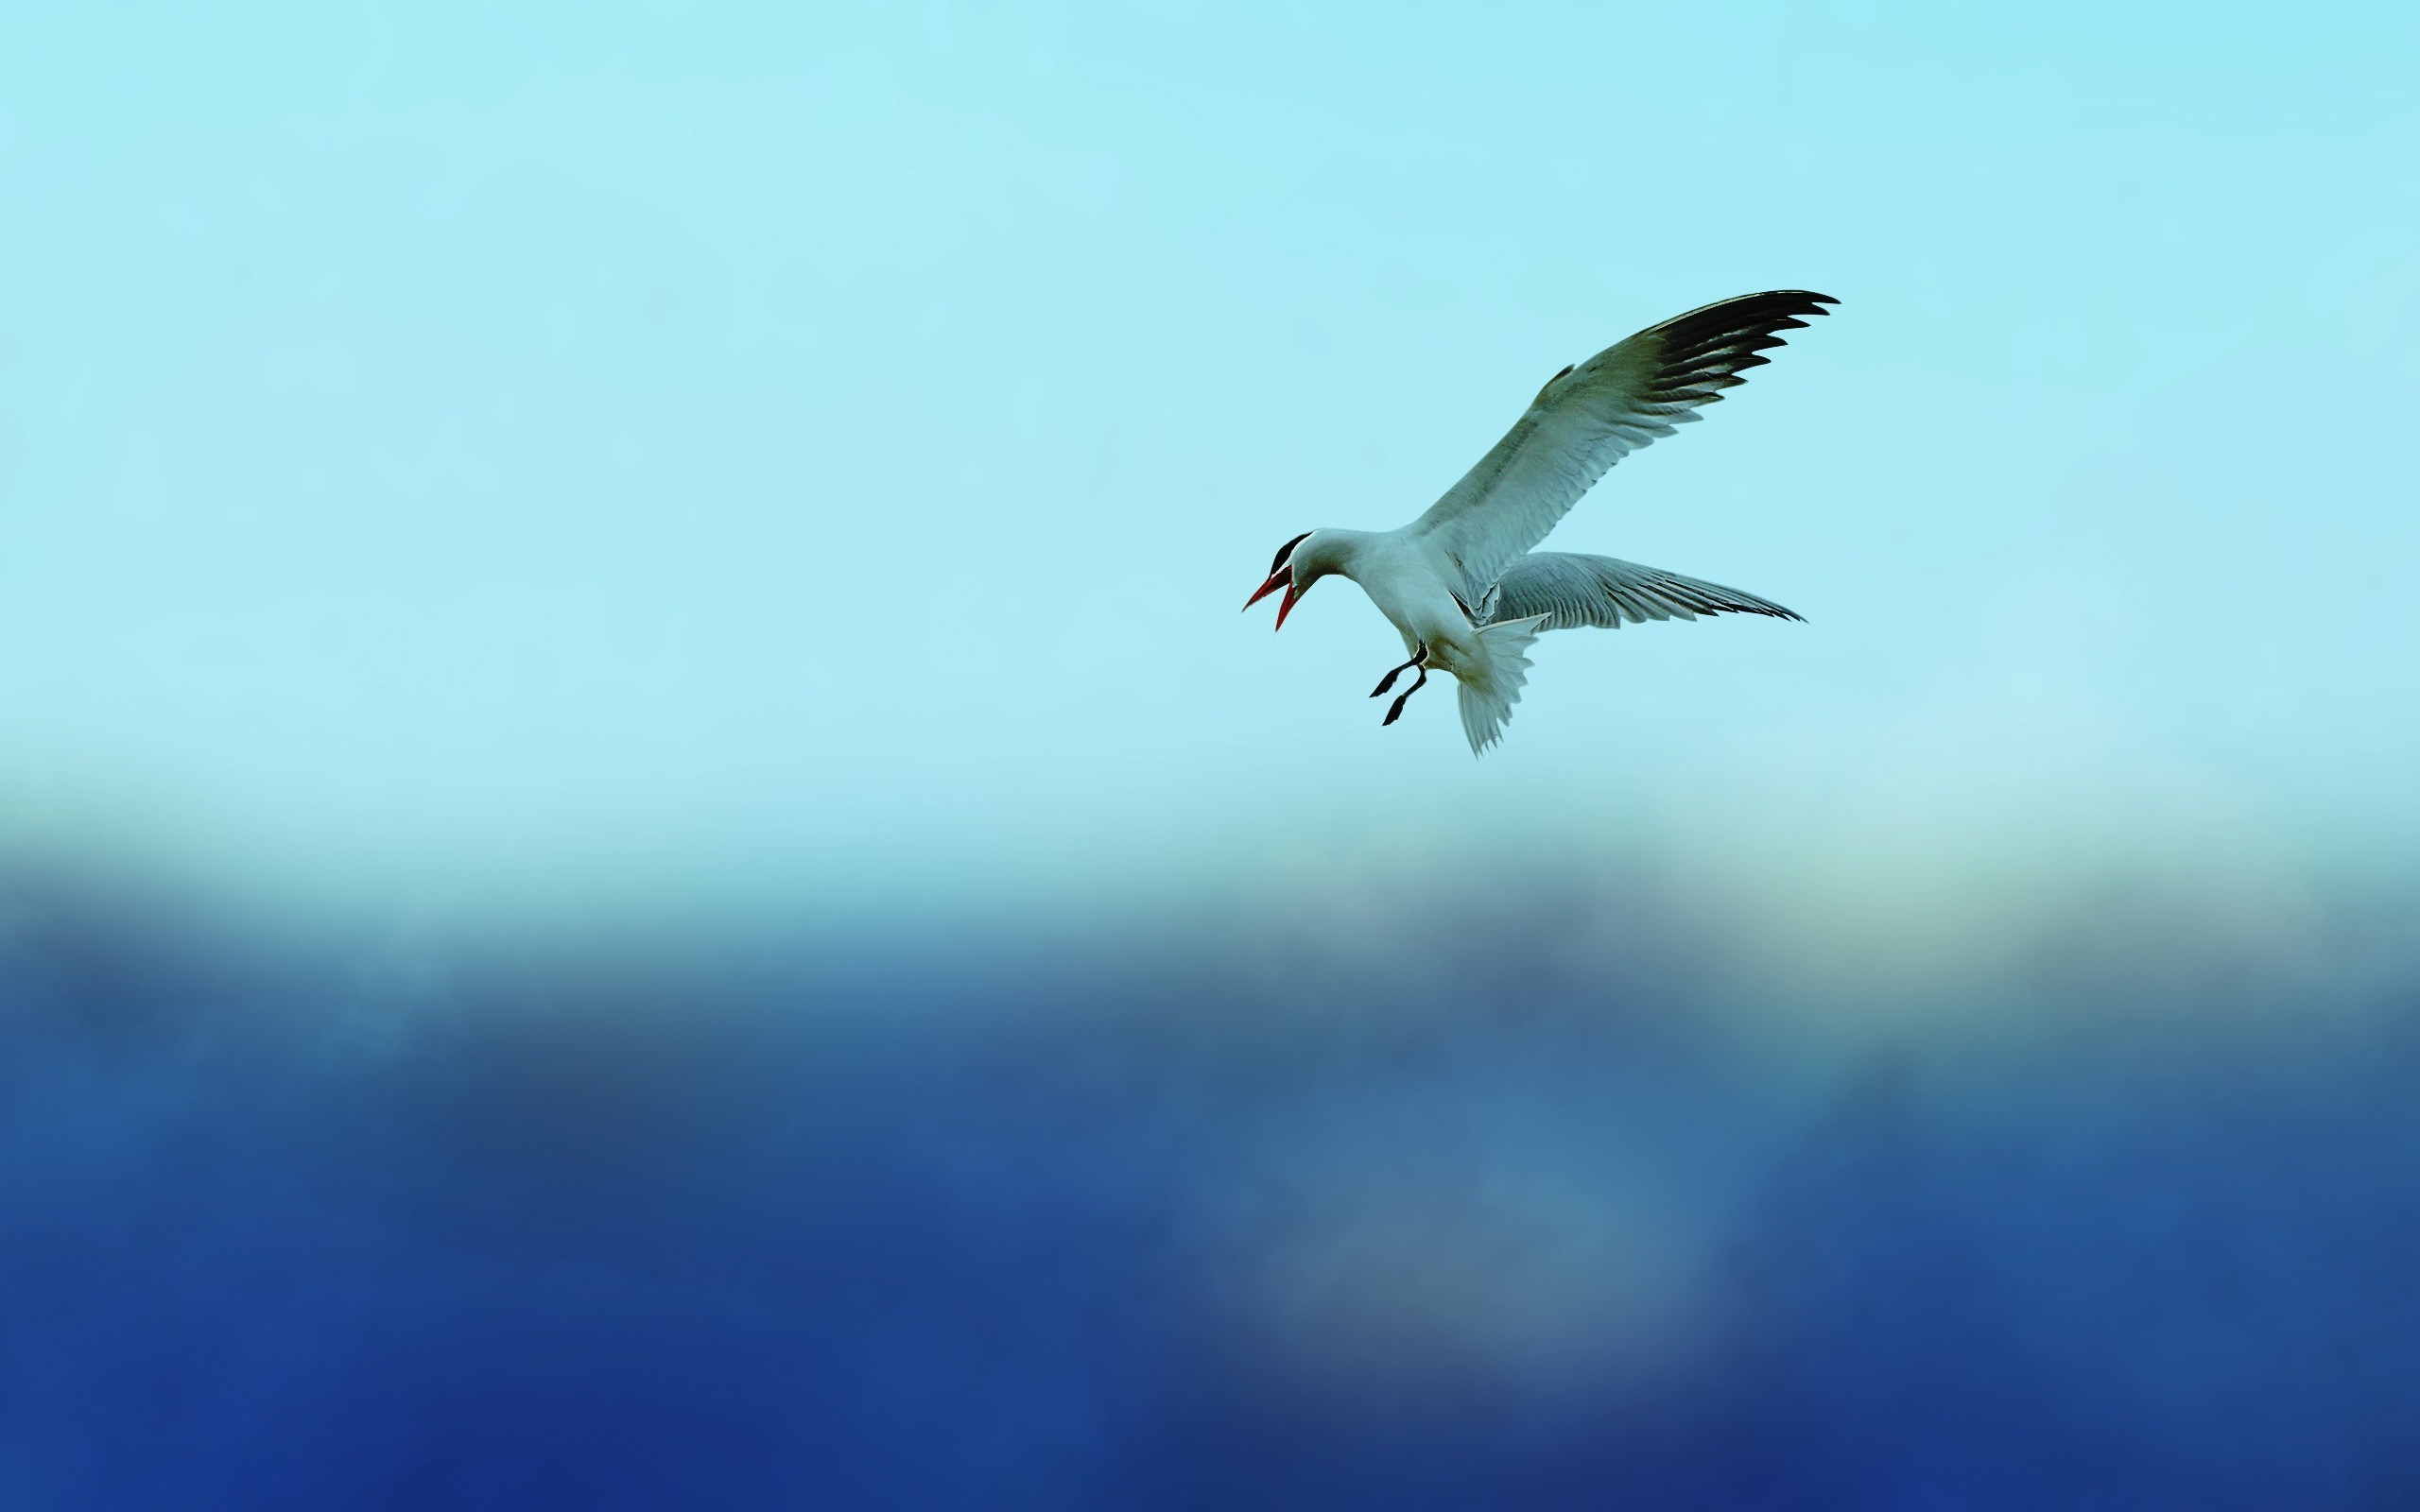 Bird Flight Wallpaper 44326 2560x1600px 2560x1600